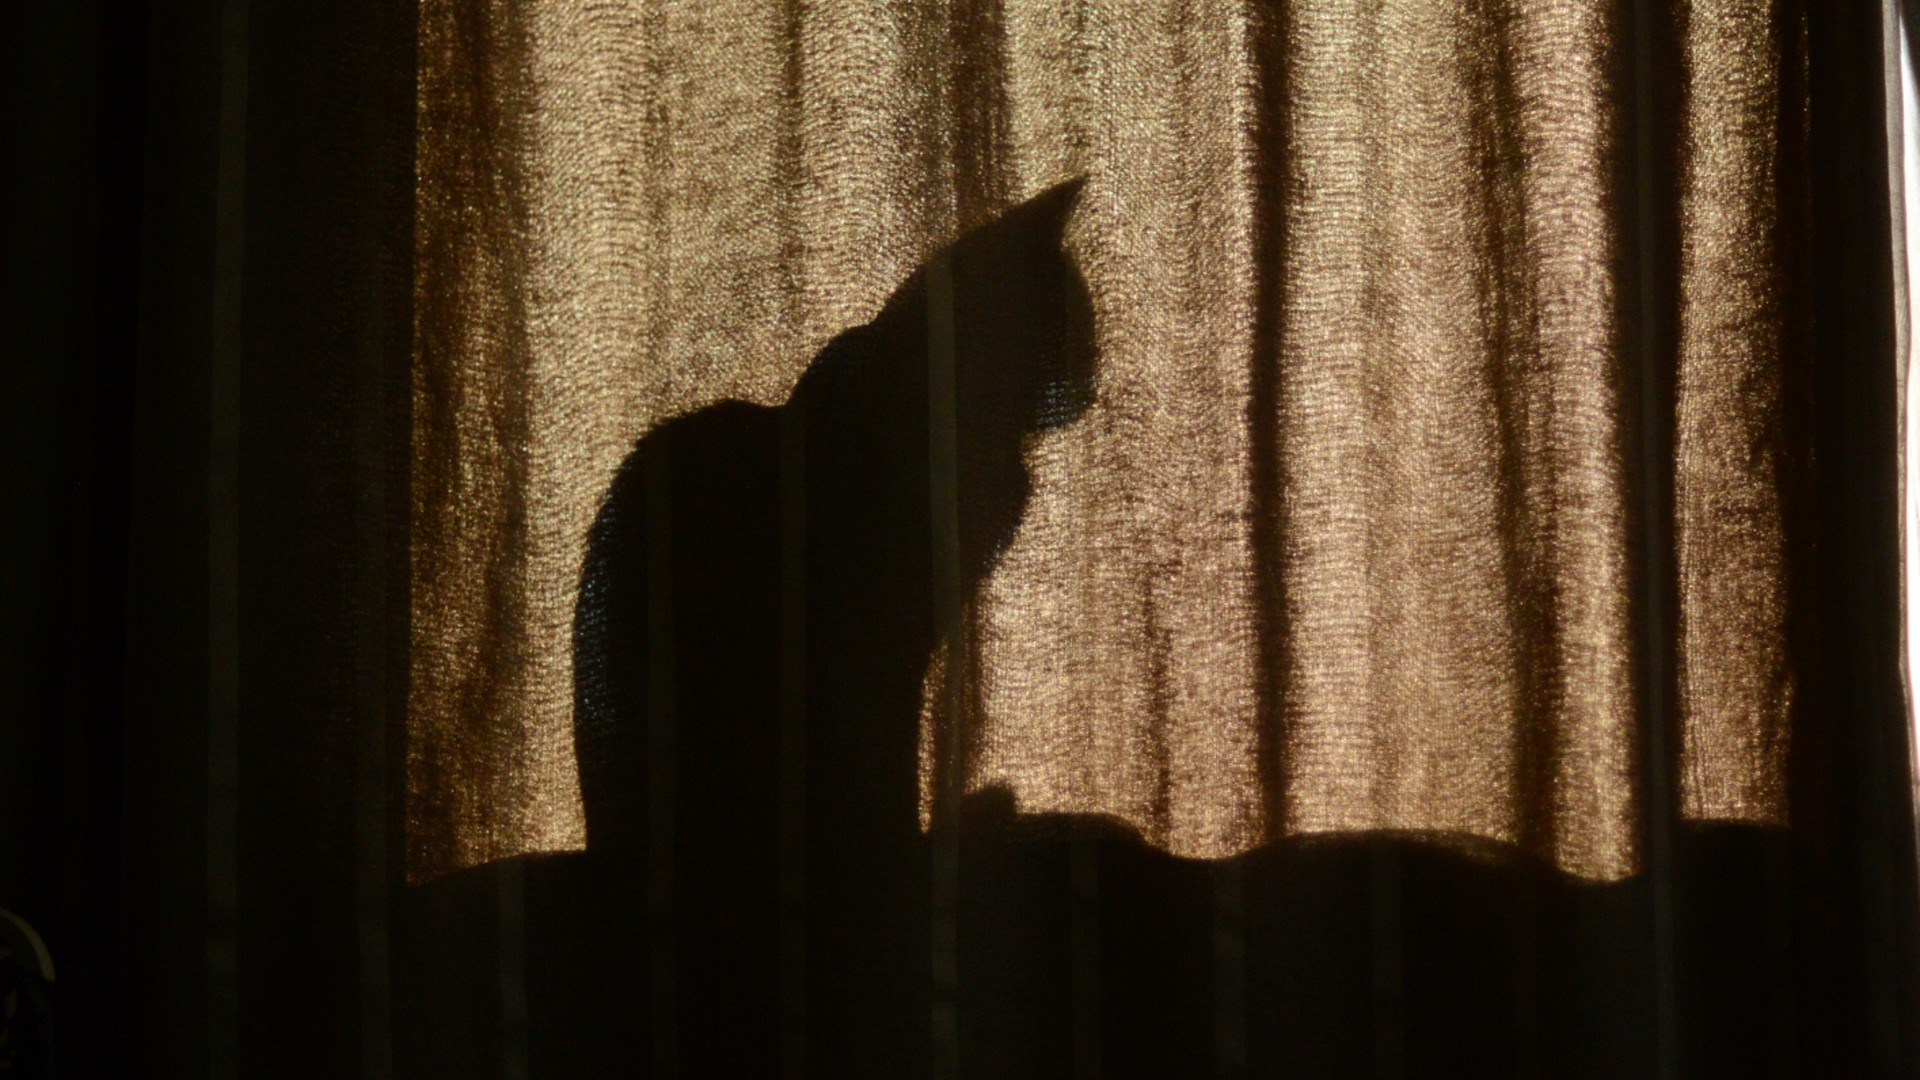 A cat is seen sitting in a windowsill in the file image. (Getty Images stock photo)